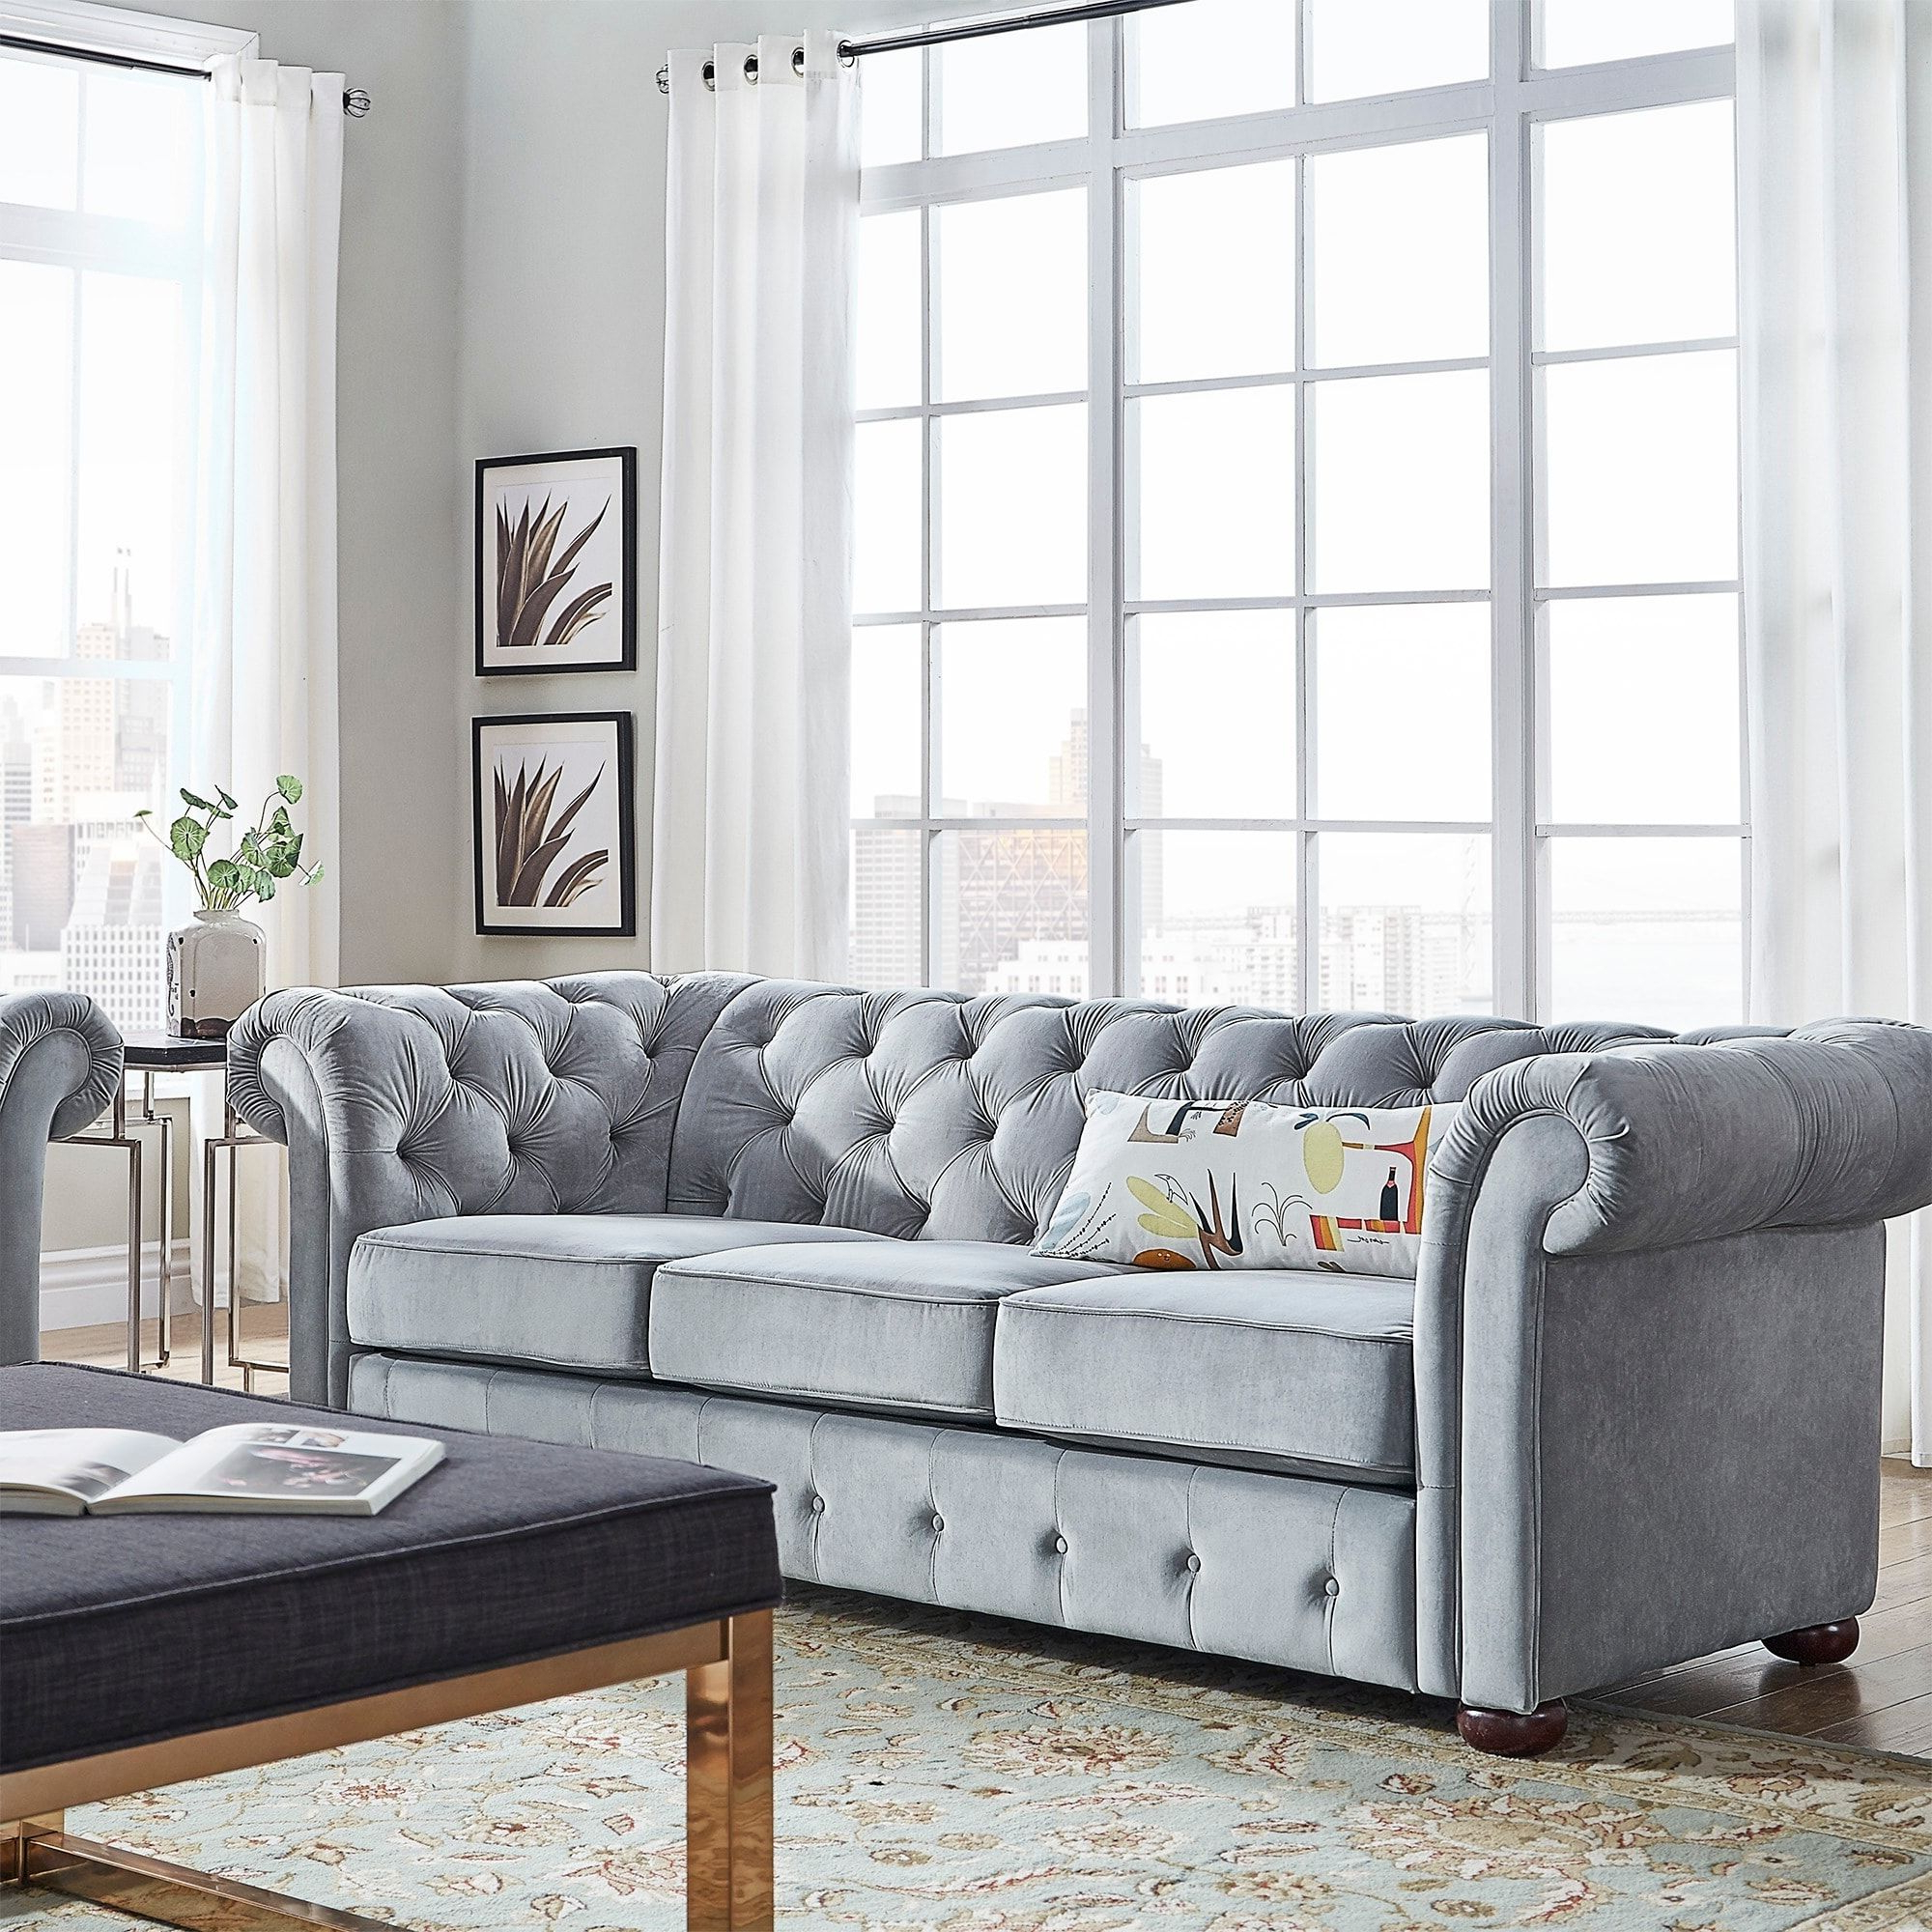 Artisan Blue Sofas Intended For Newest Knightsbridge Tufted Scroll Arm Chesterfield Sofa (View 16 of 20)